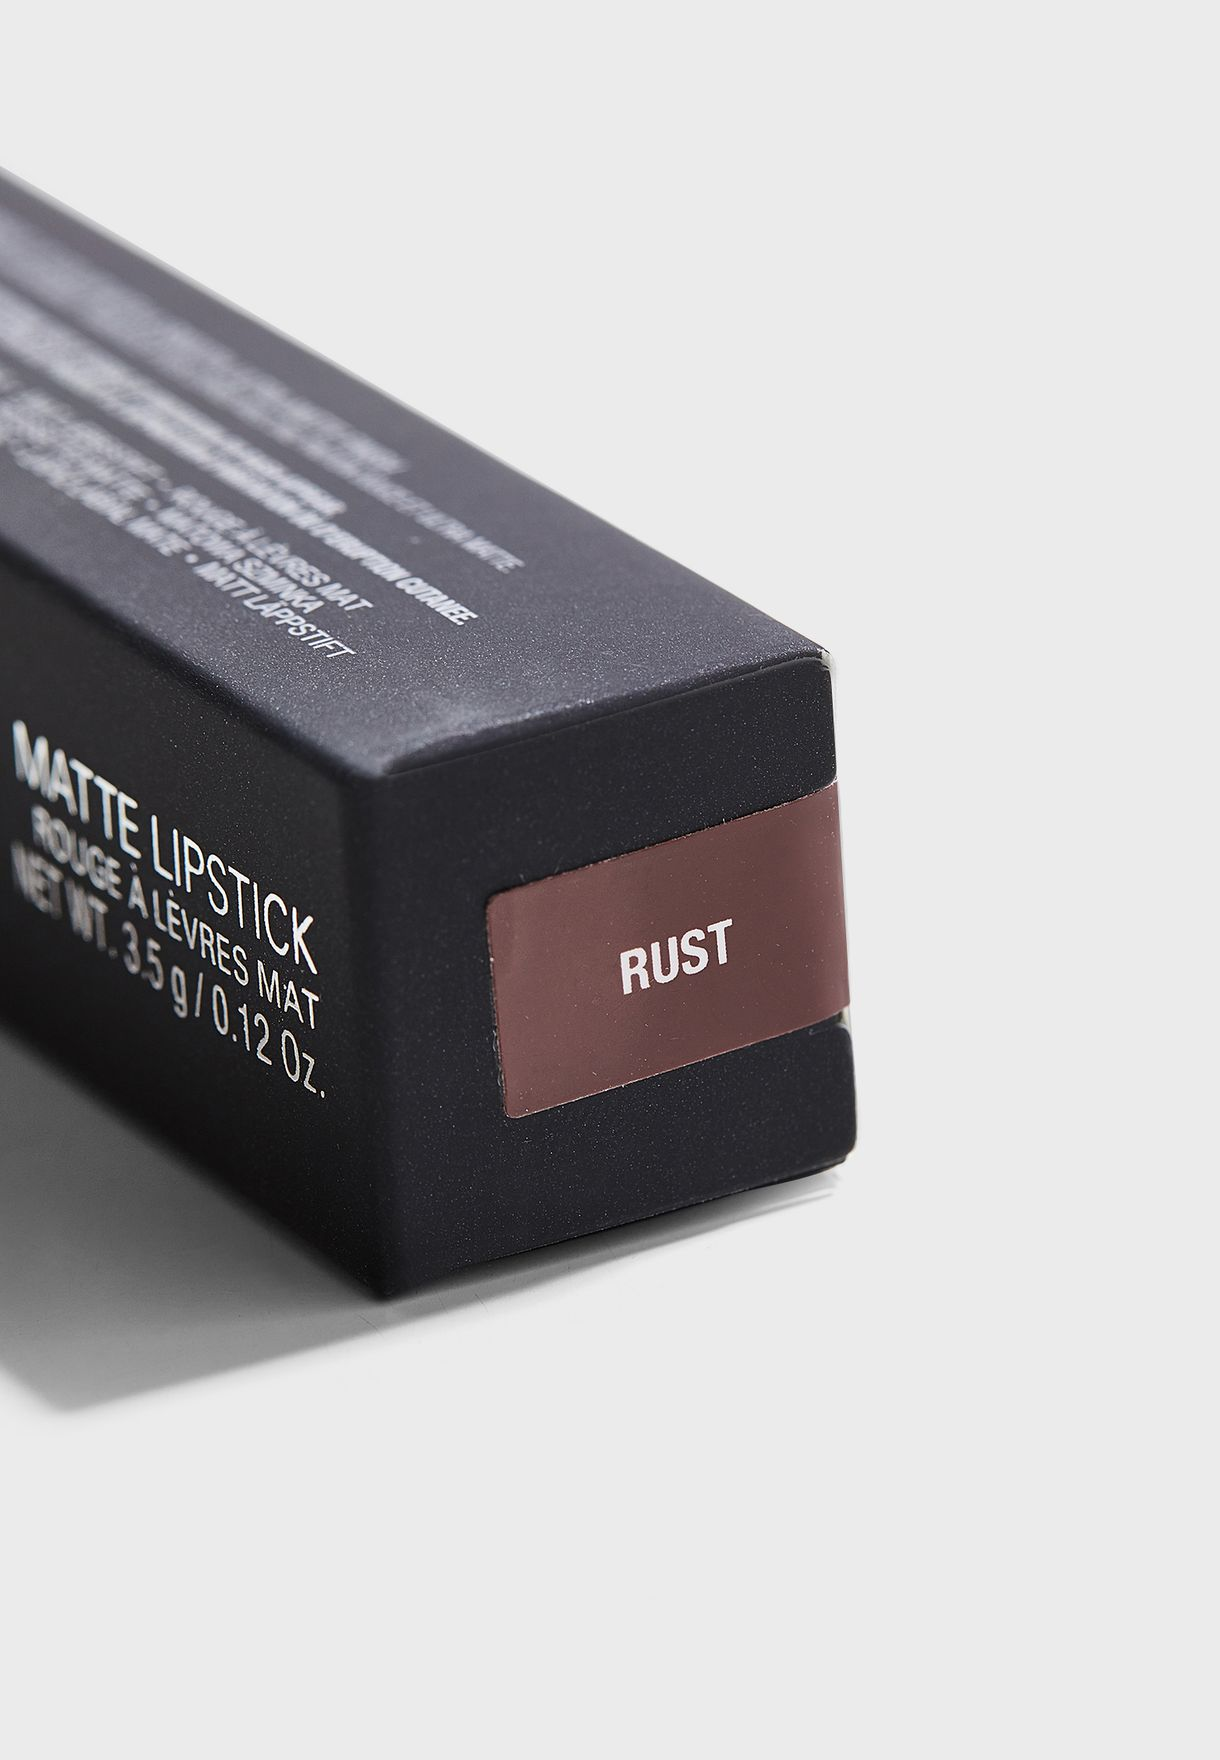 Matte Lipsticks - Rust